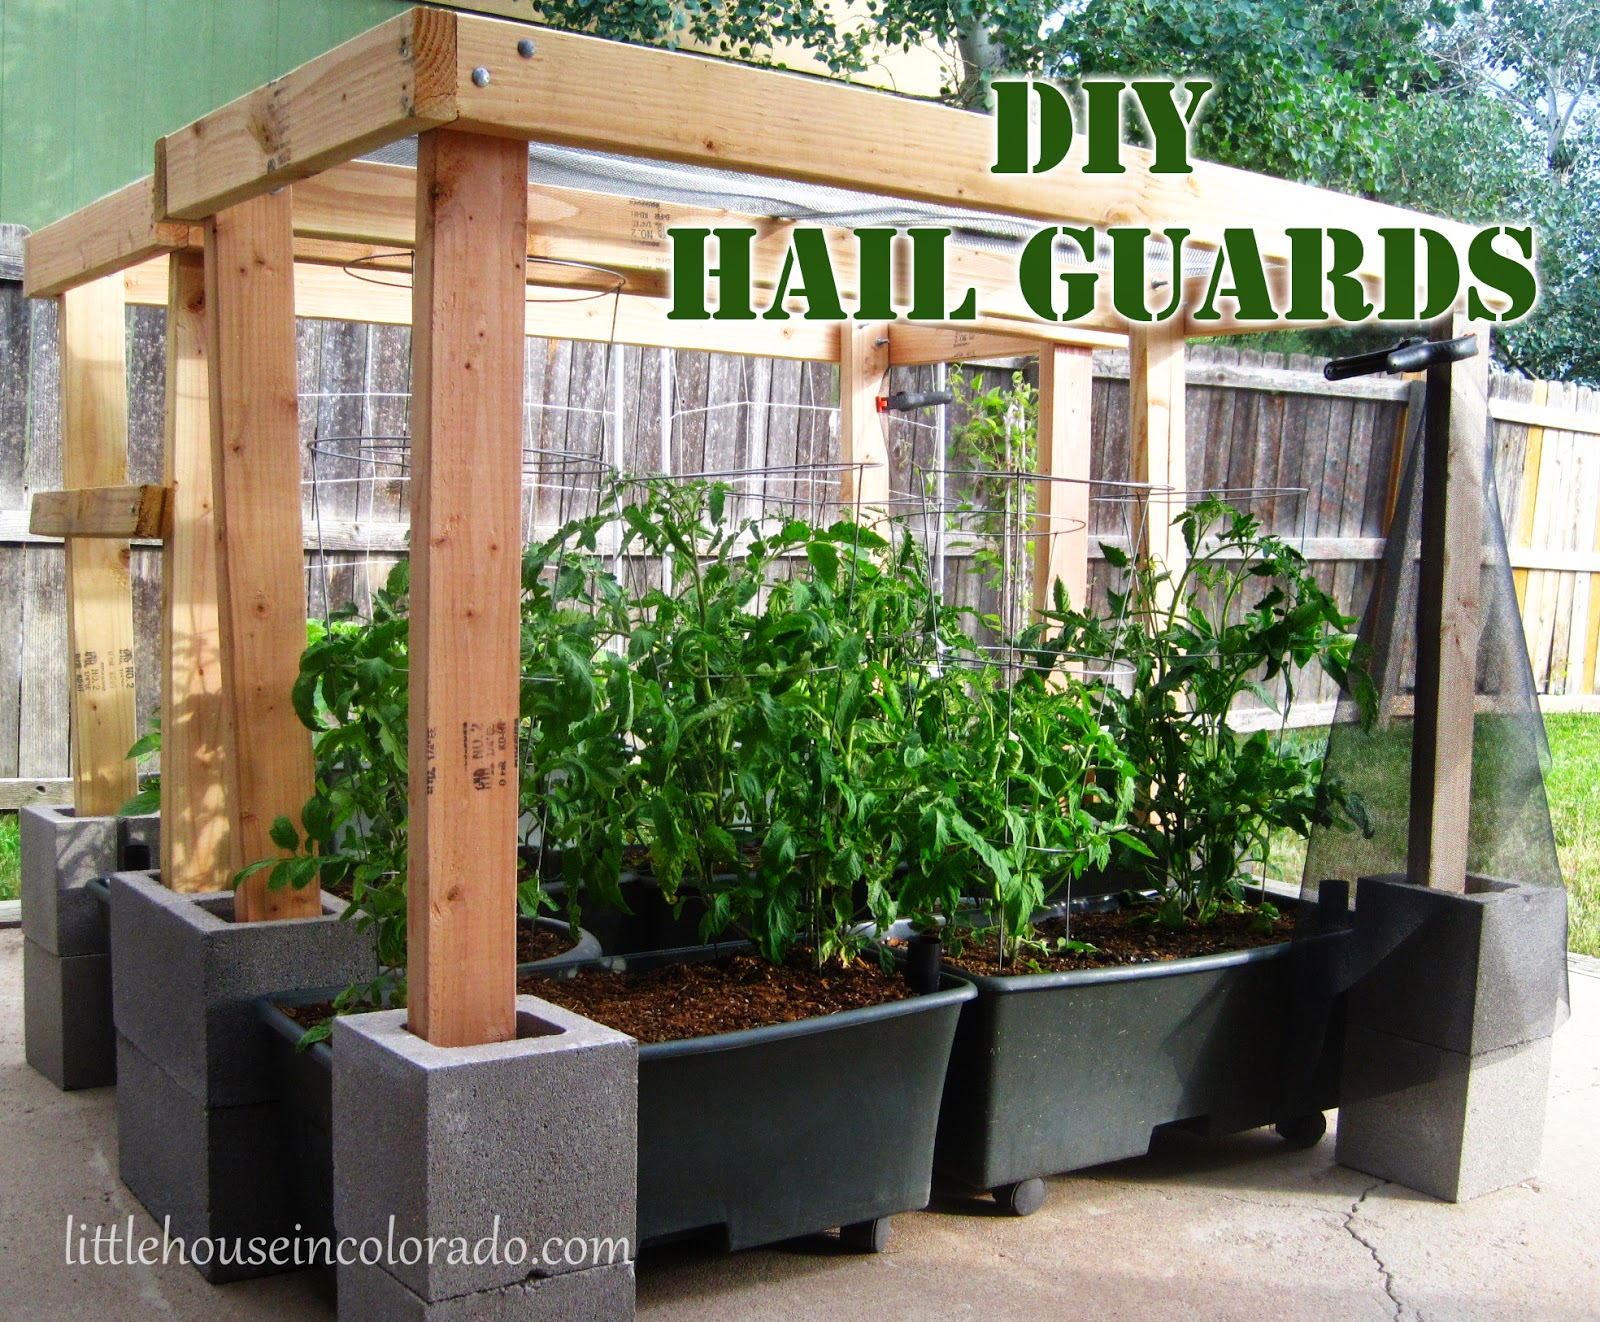 Little House In Colorado: DIY Hail Protection For The Garden